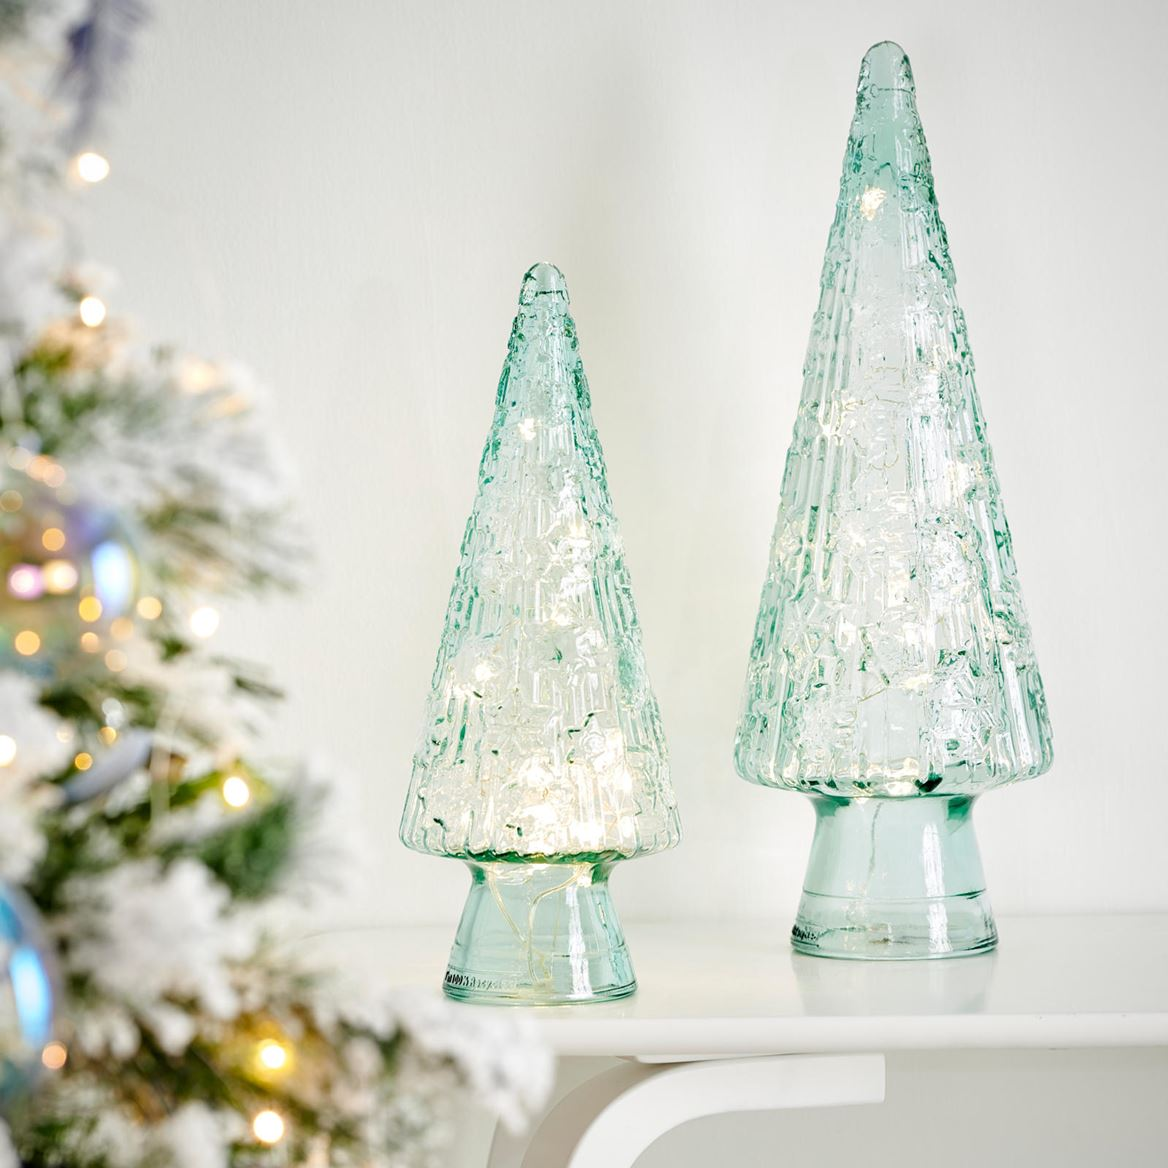 X-TREE Deco transparente A 43 cm_x-tree-deco-transparente-a-43-cm